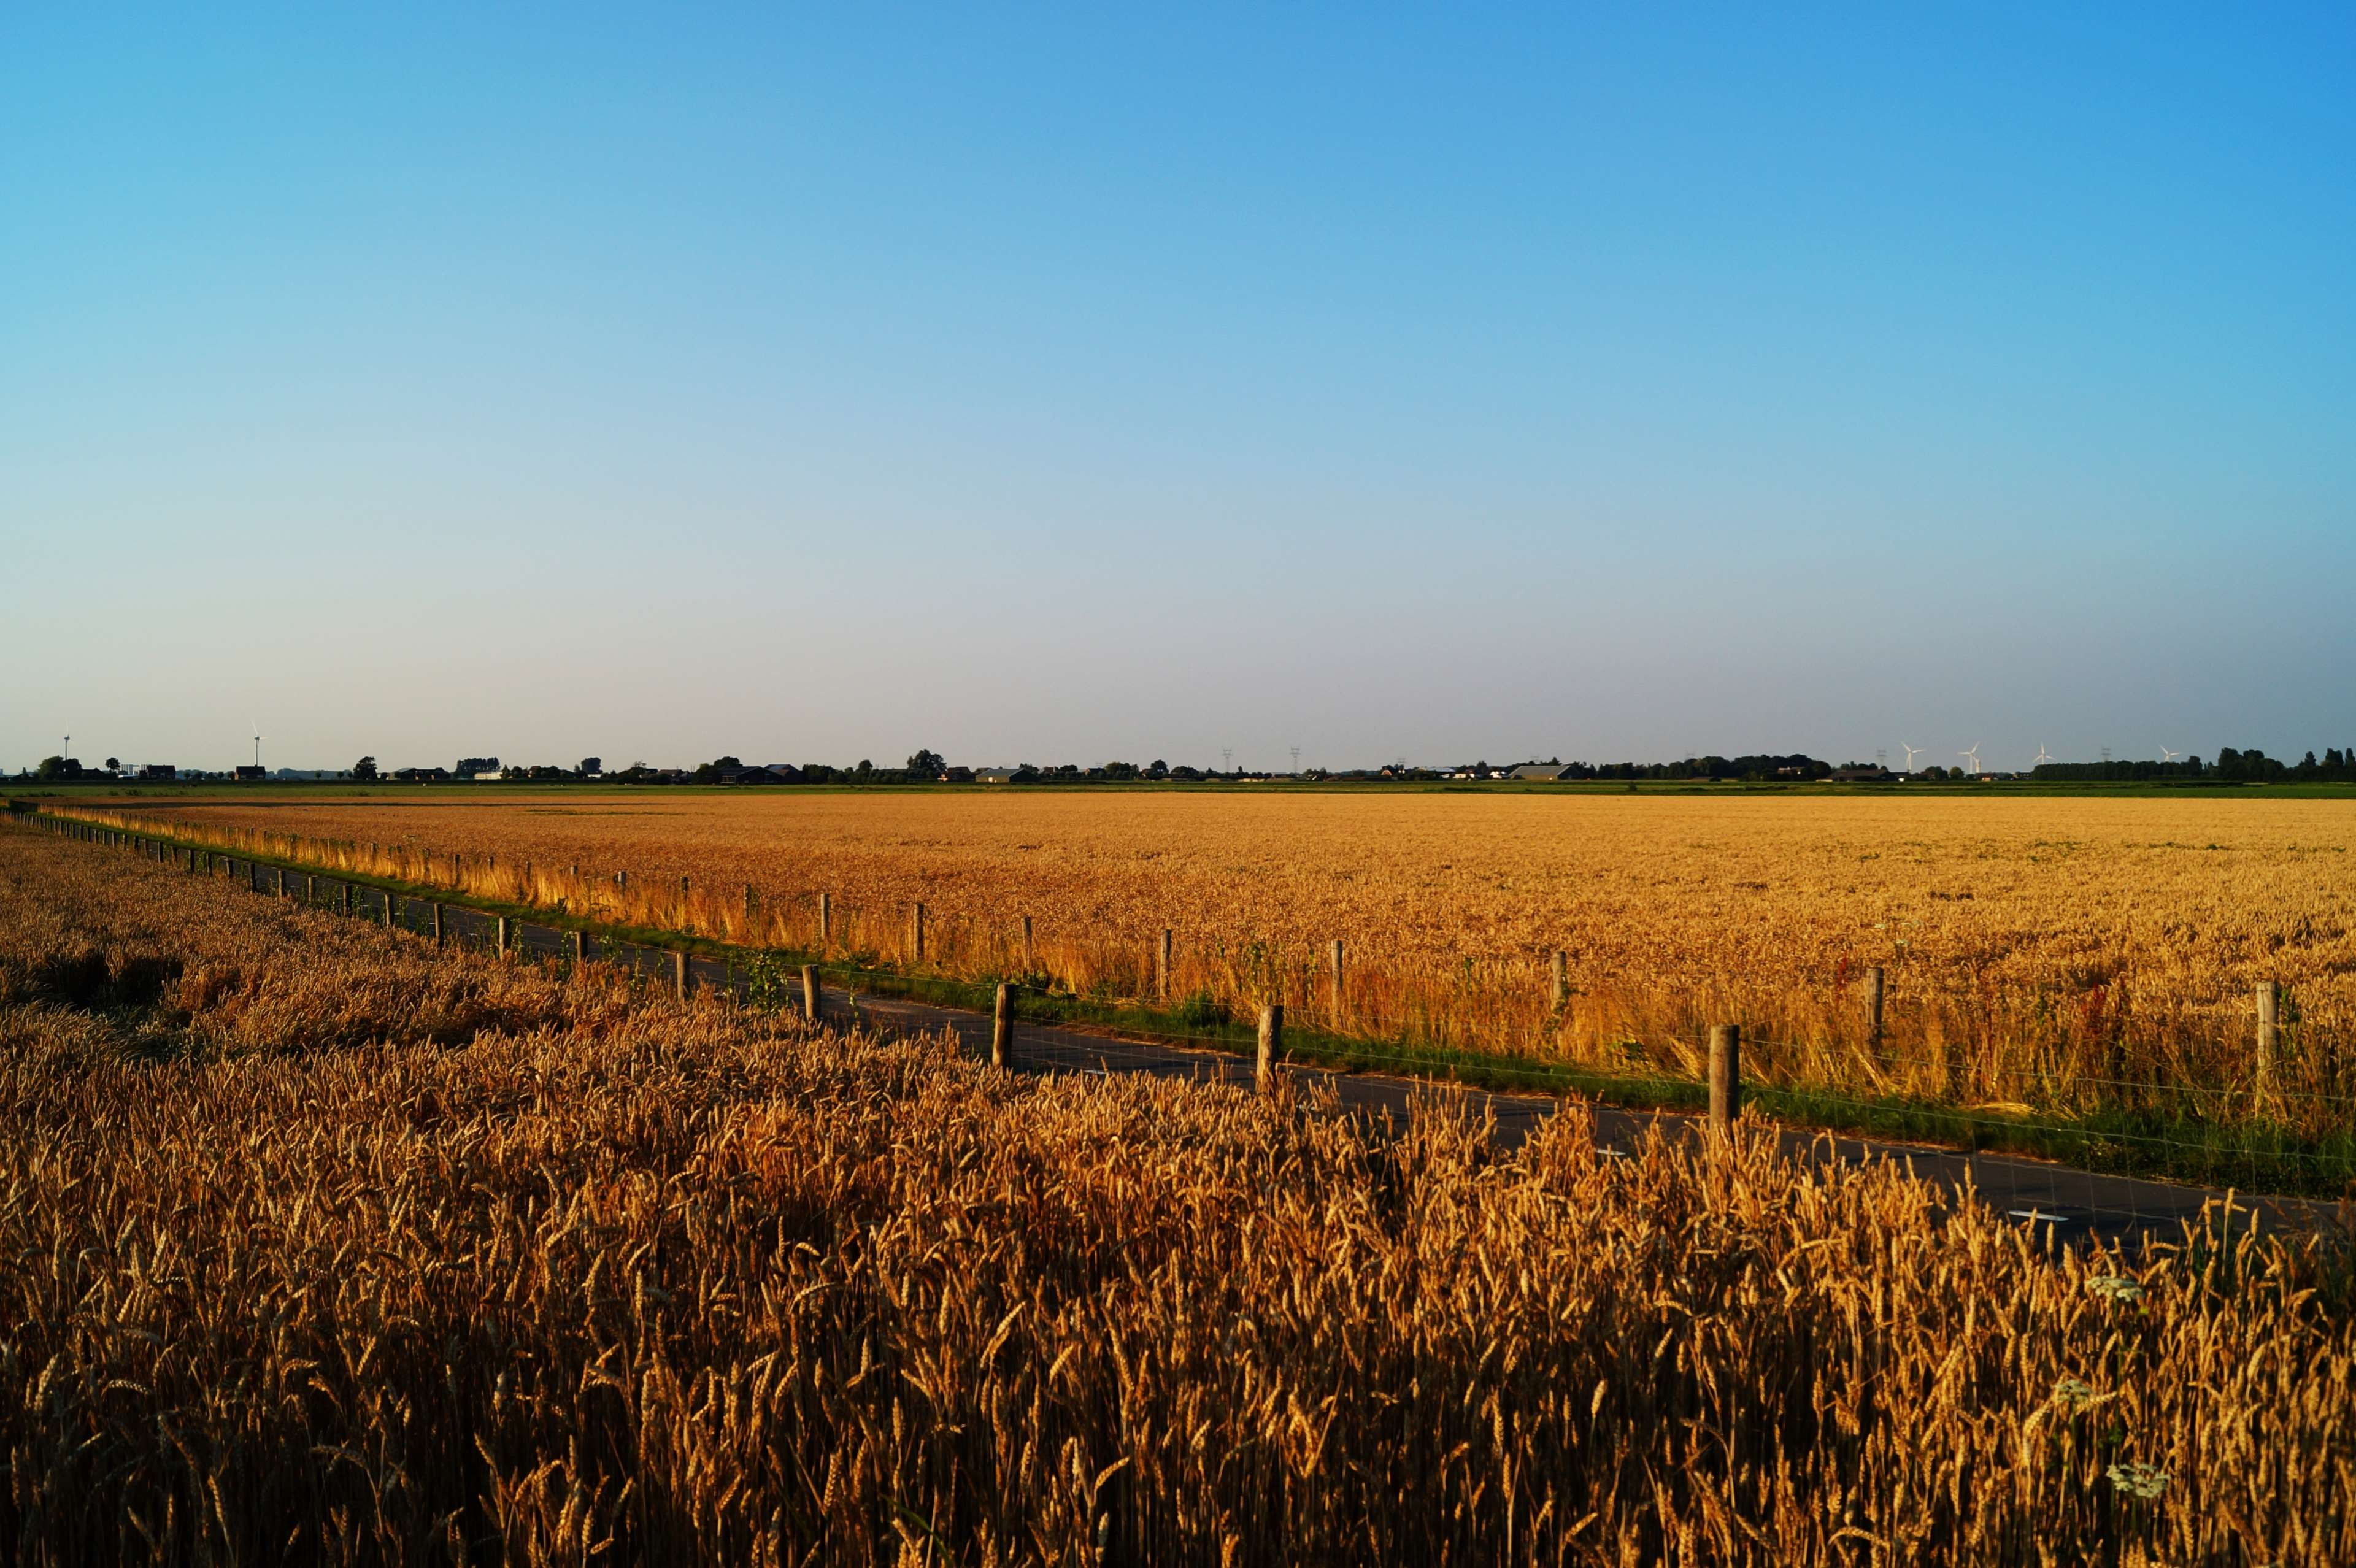 #agriculture #cereal #corn #countryside #crop #cropland #fall #farm #farming #farmland #field #food #grain #grow #growth #harvest #landscape #nature #outdoors #pasture #road #rural #sky #summer #wheat #wheat field